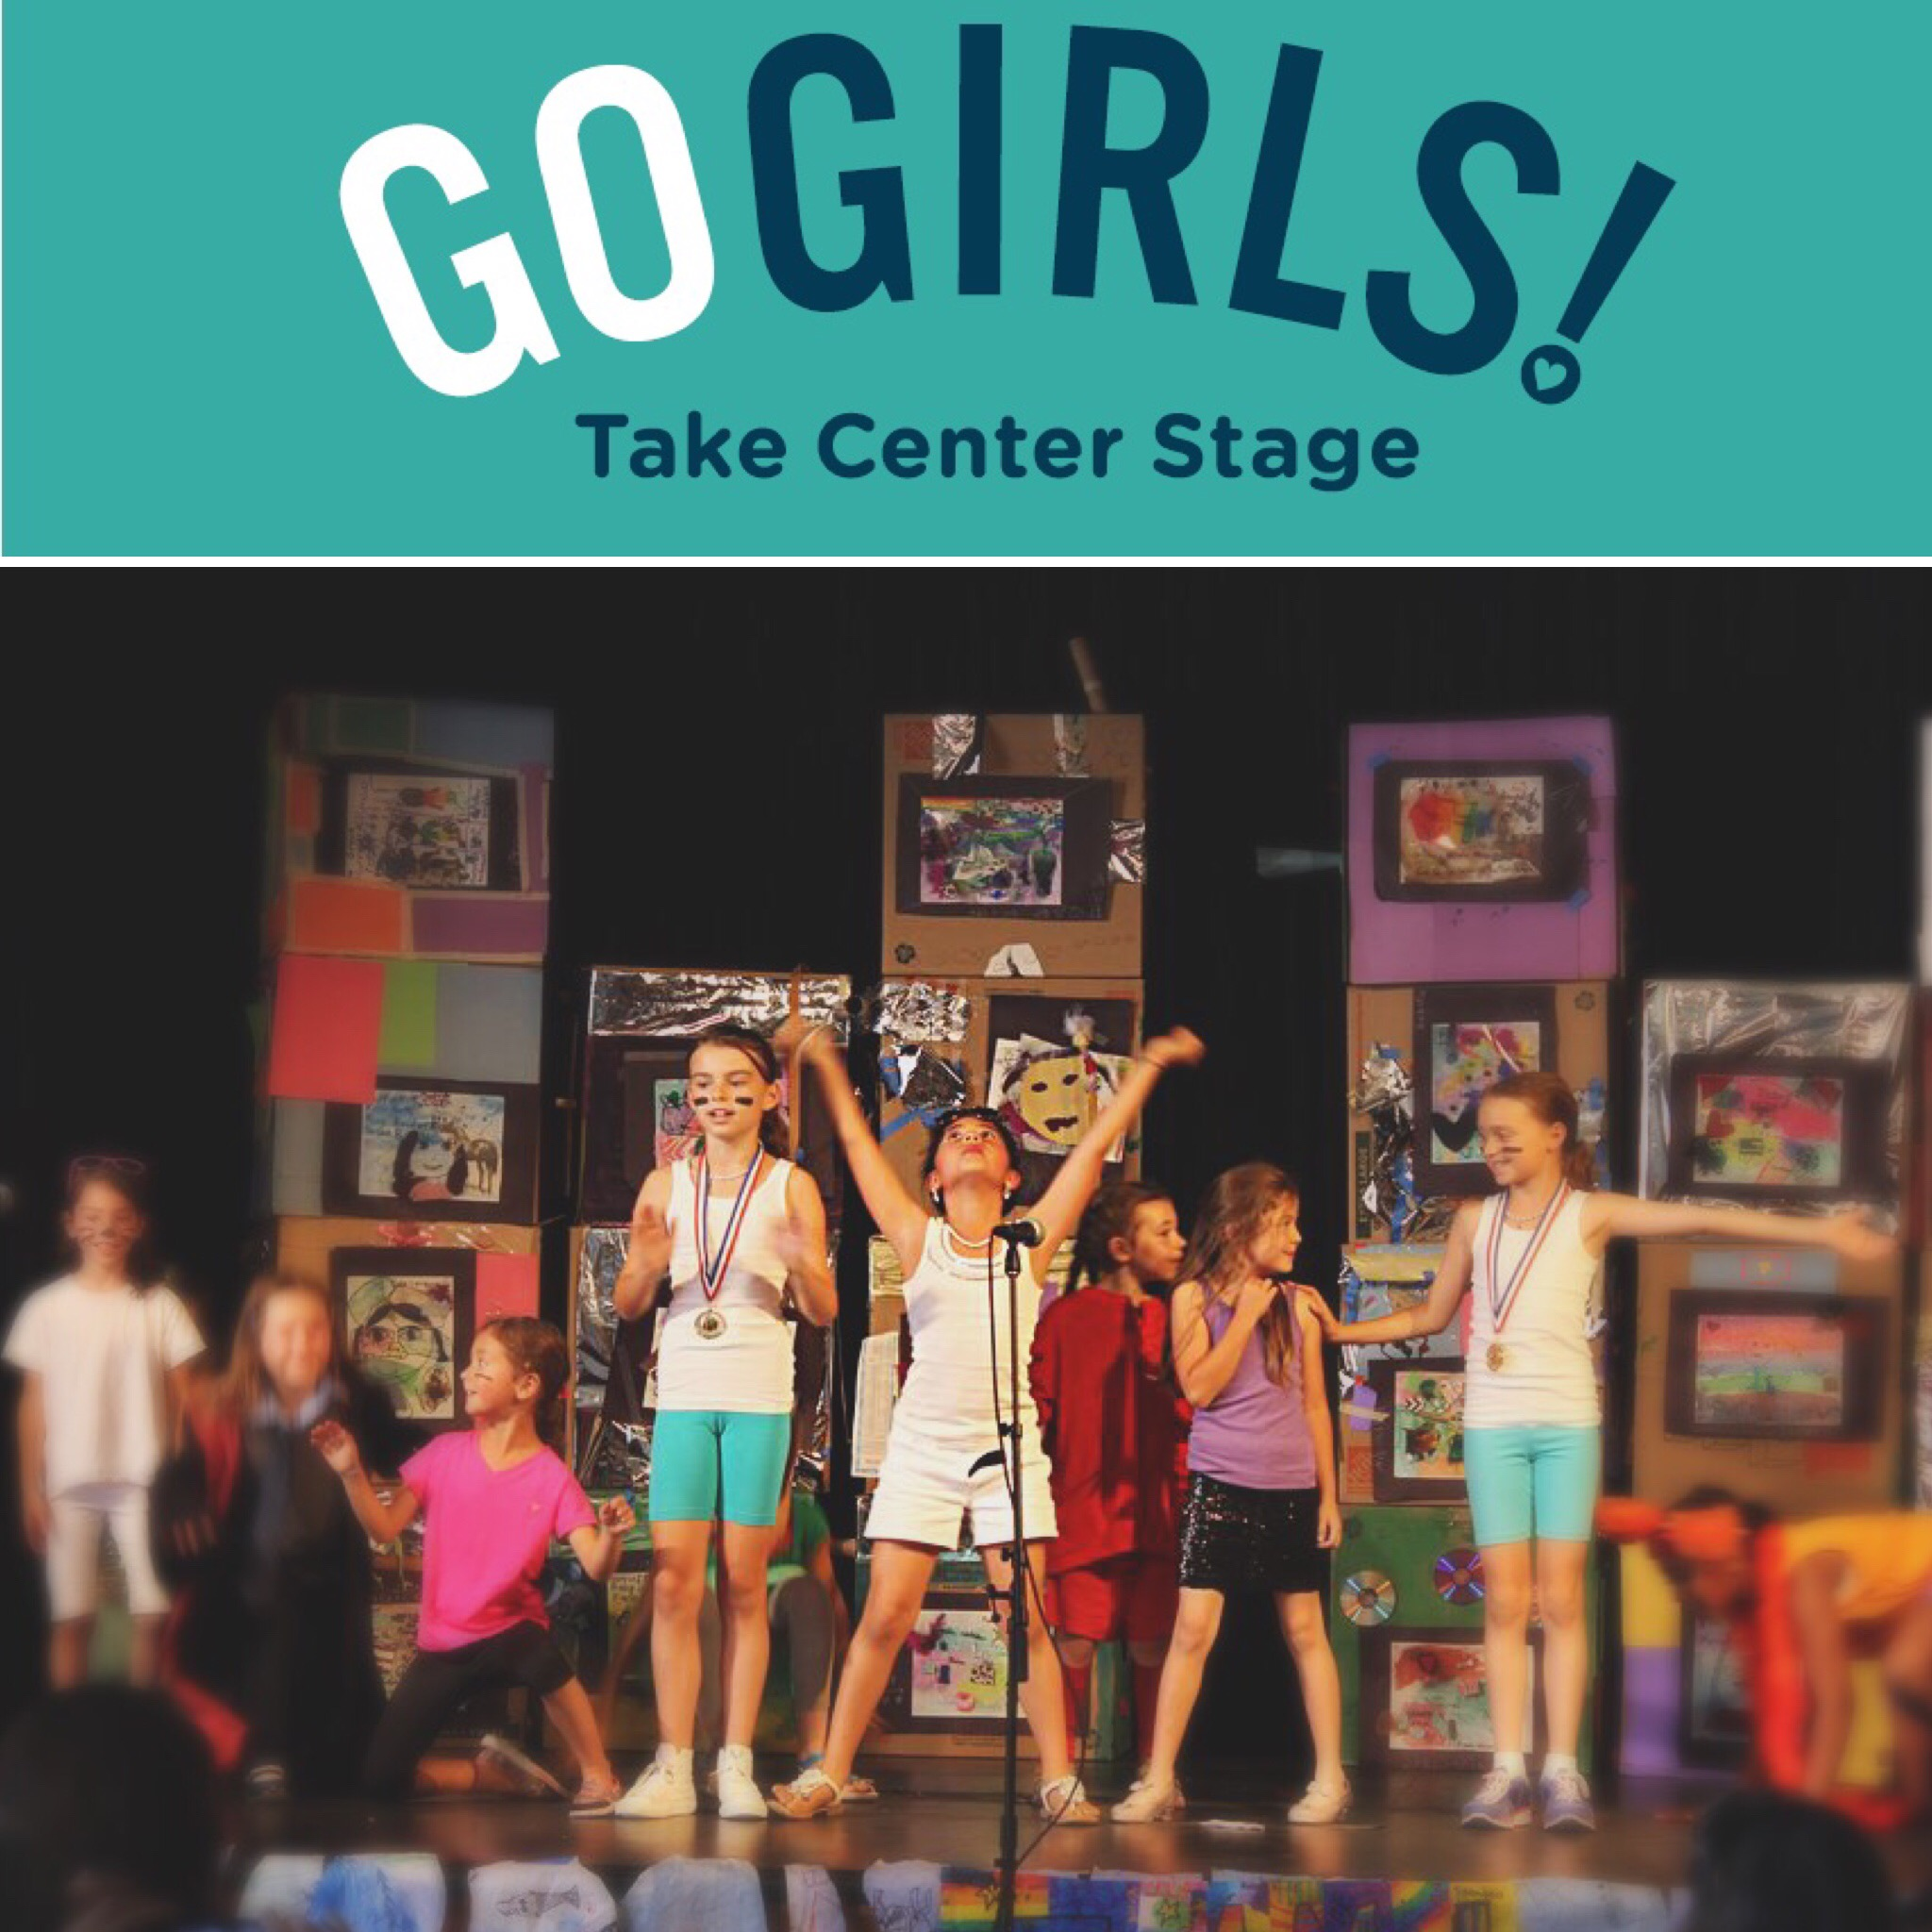 Go Girls Camp - A 2-week summer program to empower young girls to take center stage.